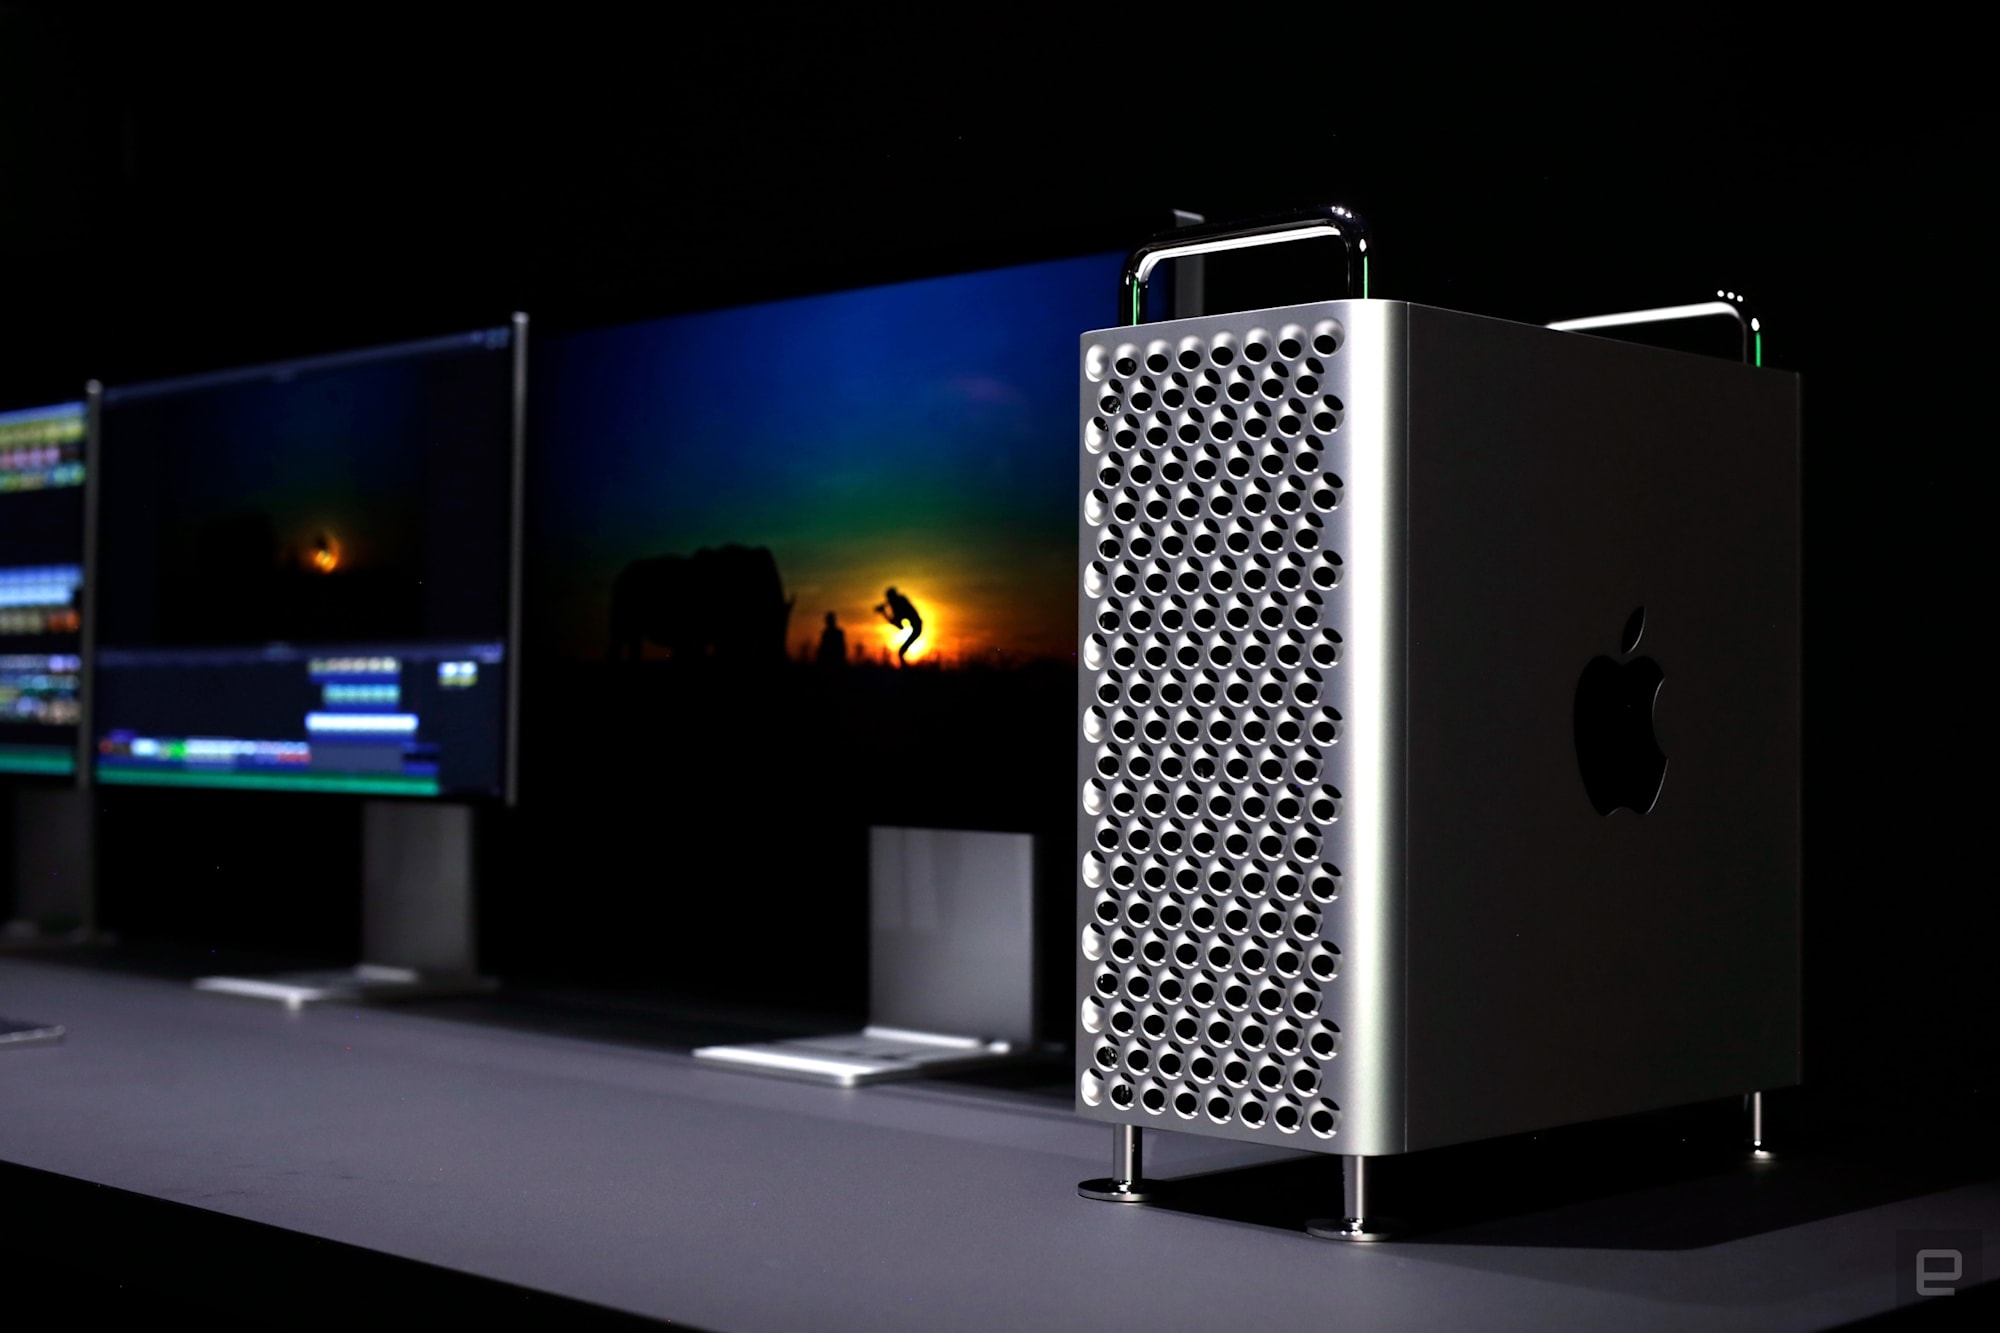 Apple Mac Pro (2019) and Pro Display XDR